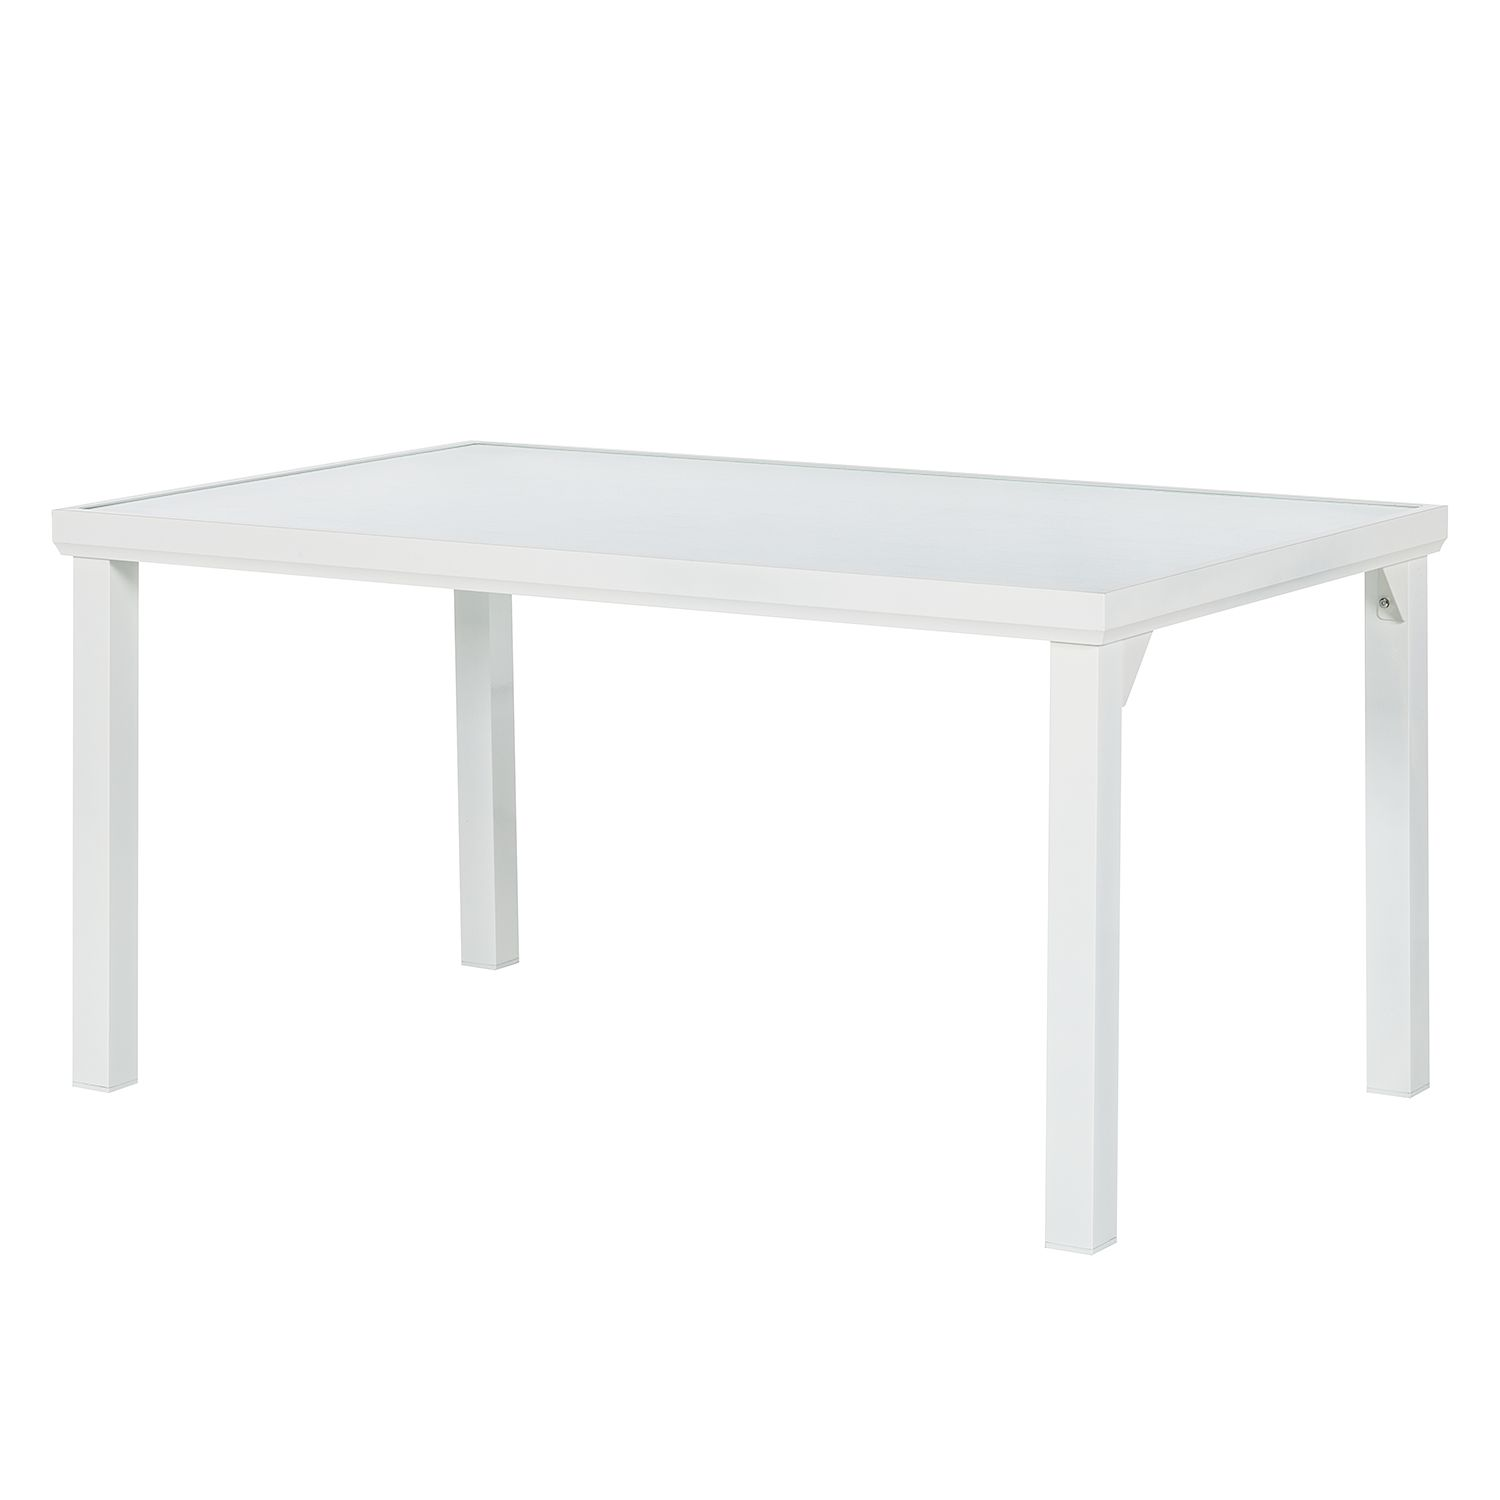 Table de jardin Leno - Aluminium / Verre - Blanc, mooved